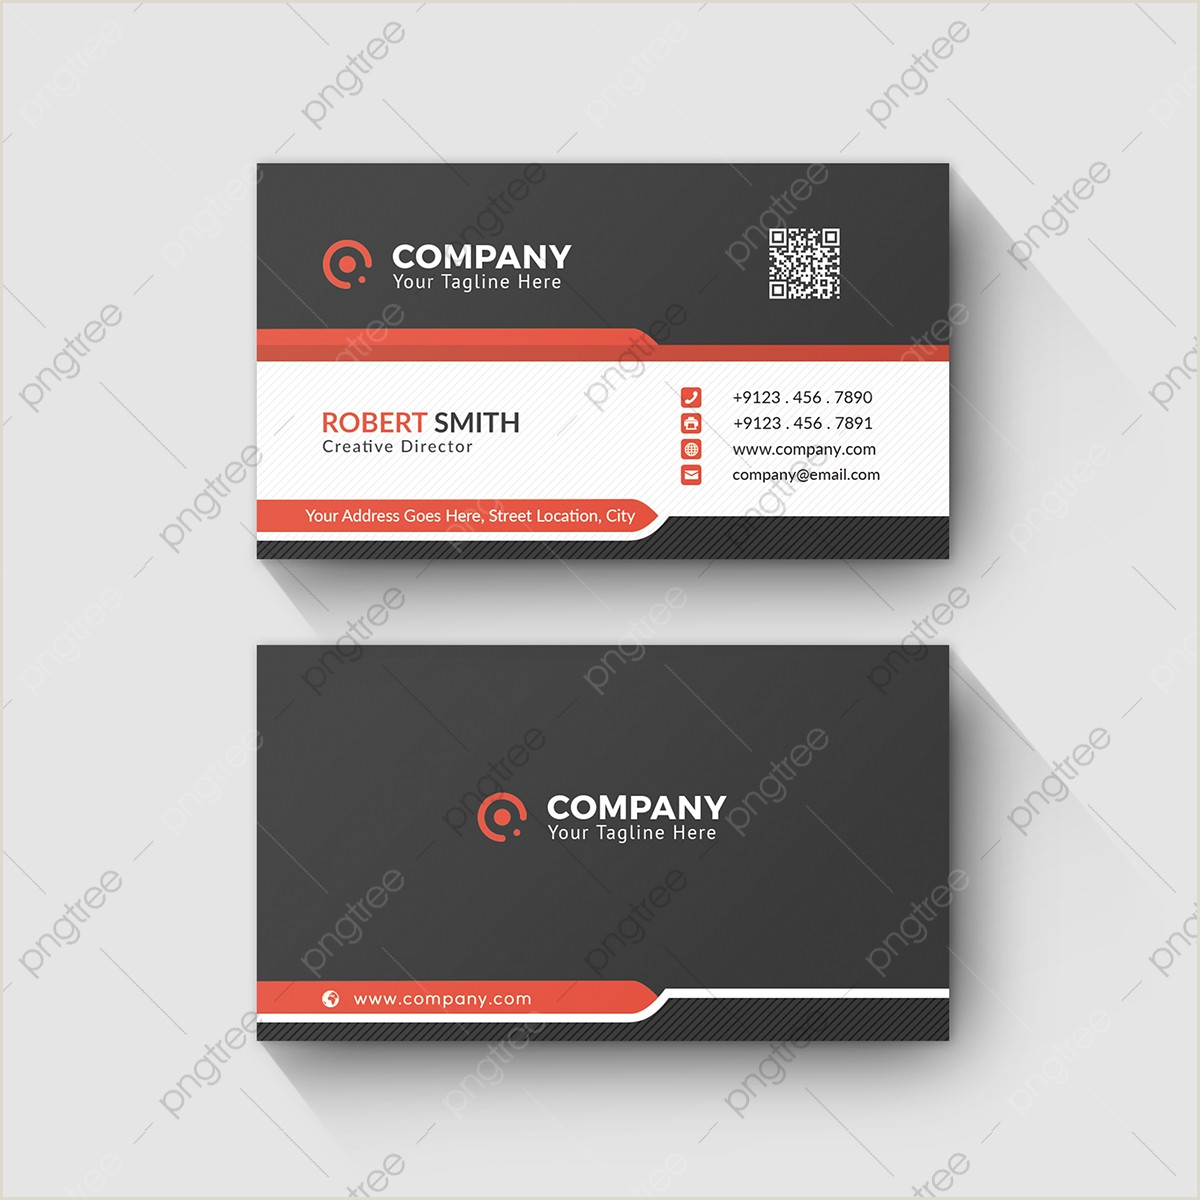 Personal Cards Designs Personal Card Png Vector And Psd Files